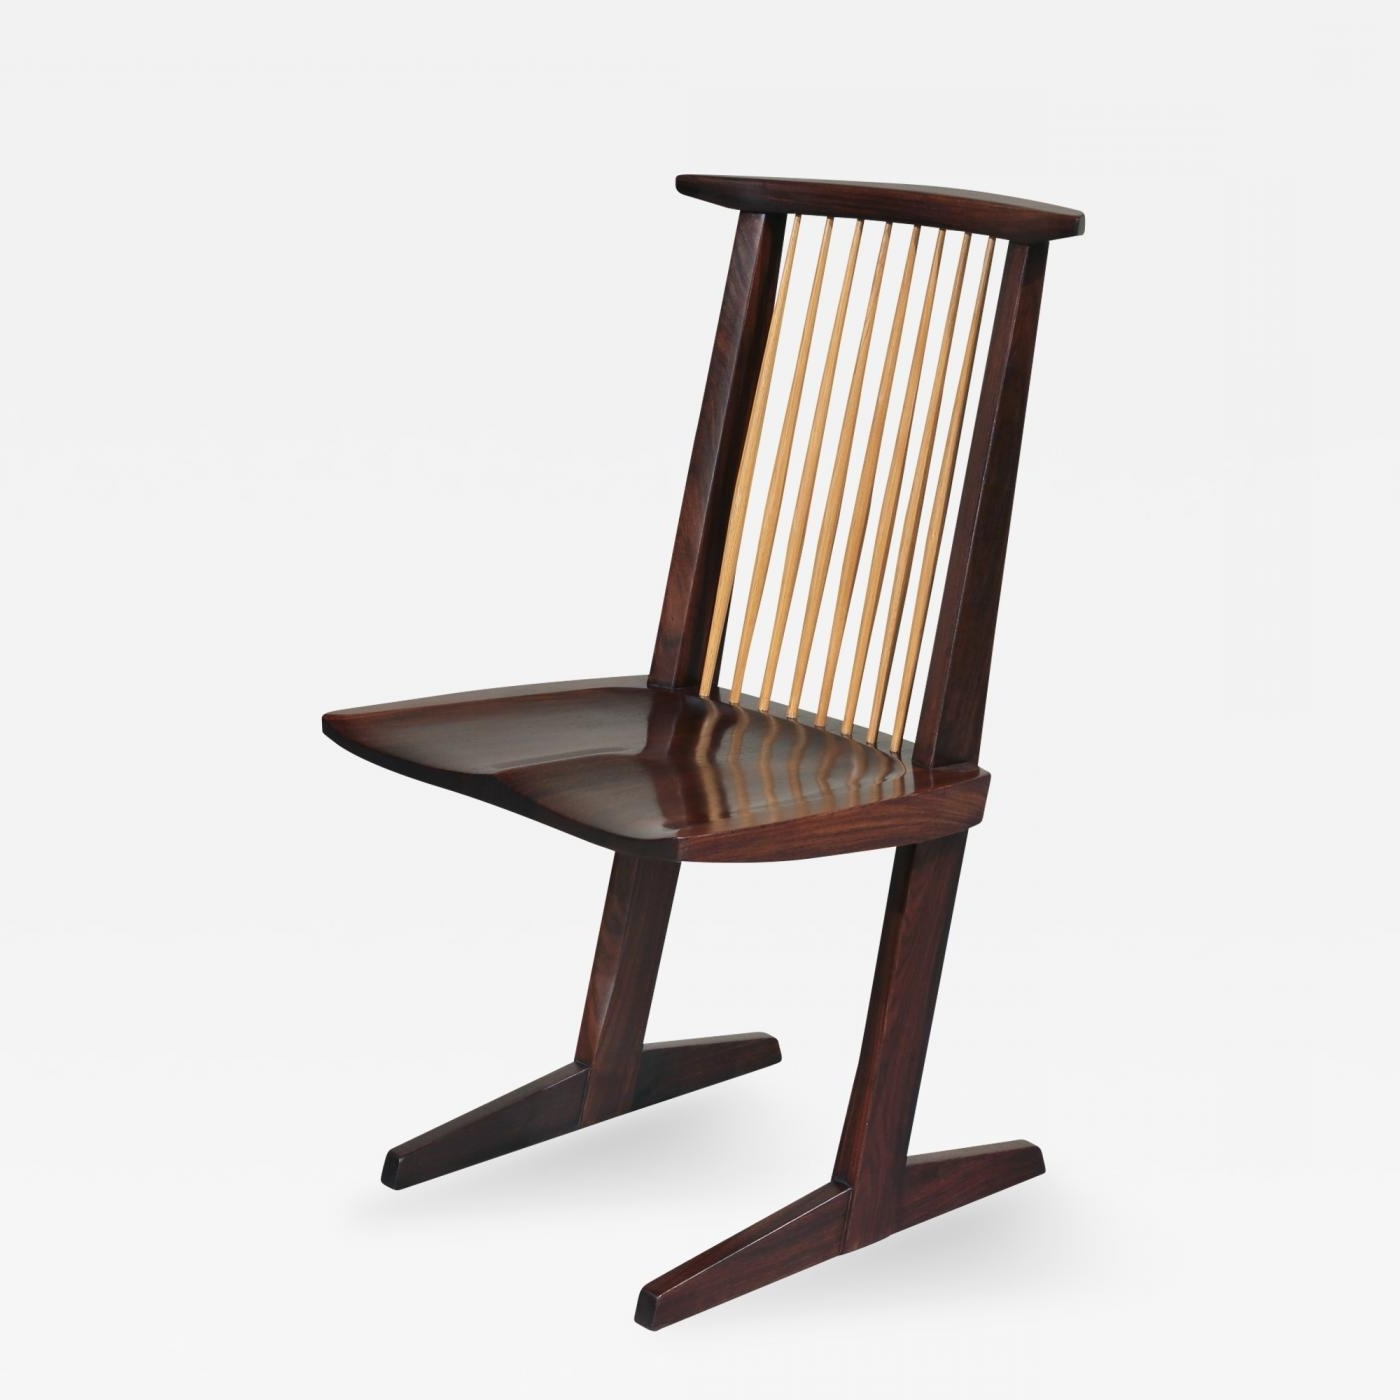 George Nakashima – 12 Extremely Rare East Indian Rosewood Conoid With Regard To Well Known Indian Dining Chairs (View 23 of 25)